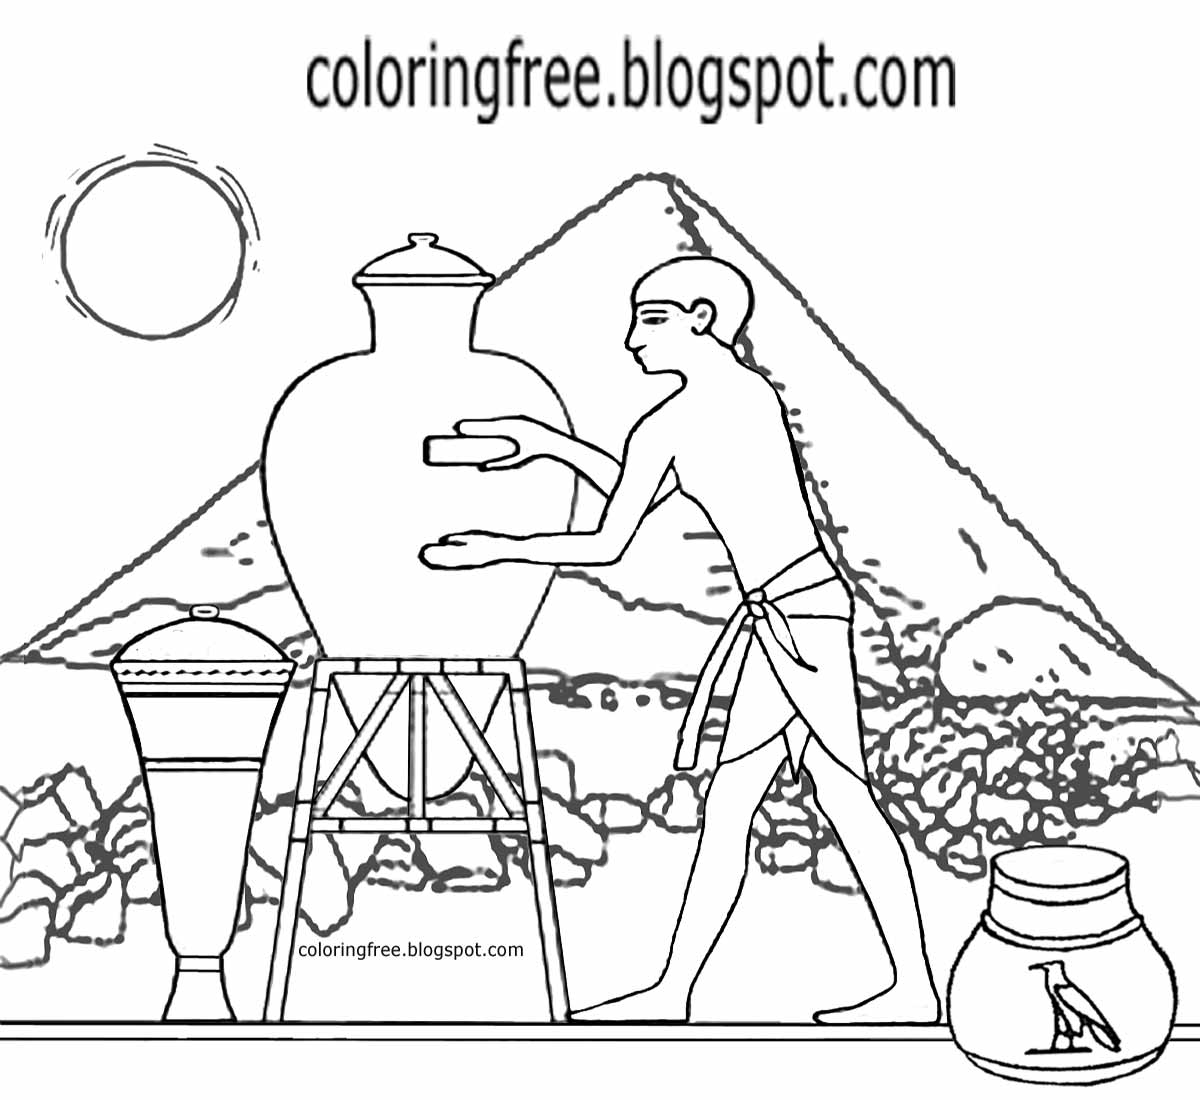 Free Coloring Pages Printable Pictures To Color Kids Drawing Ideas Printable Egyptian Drawing